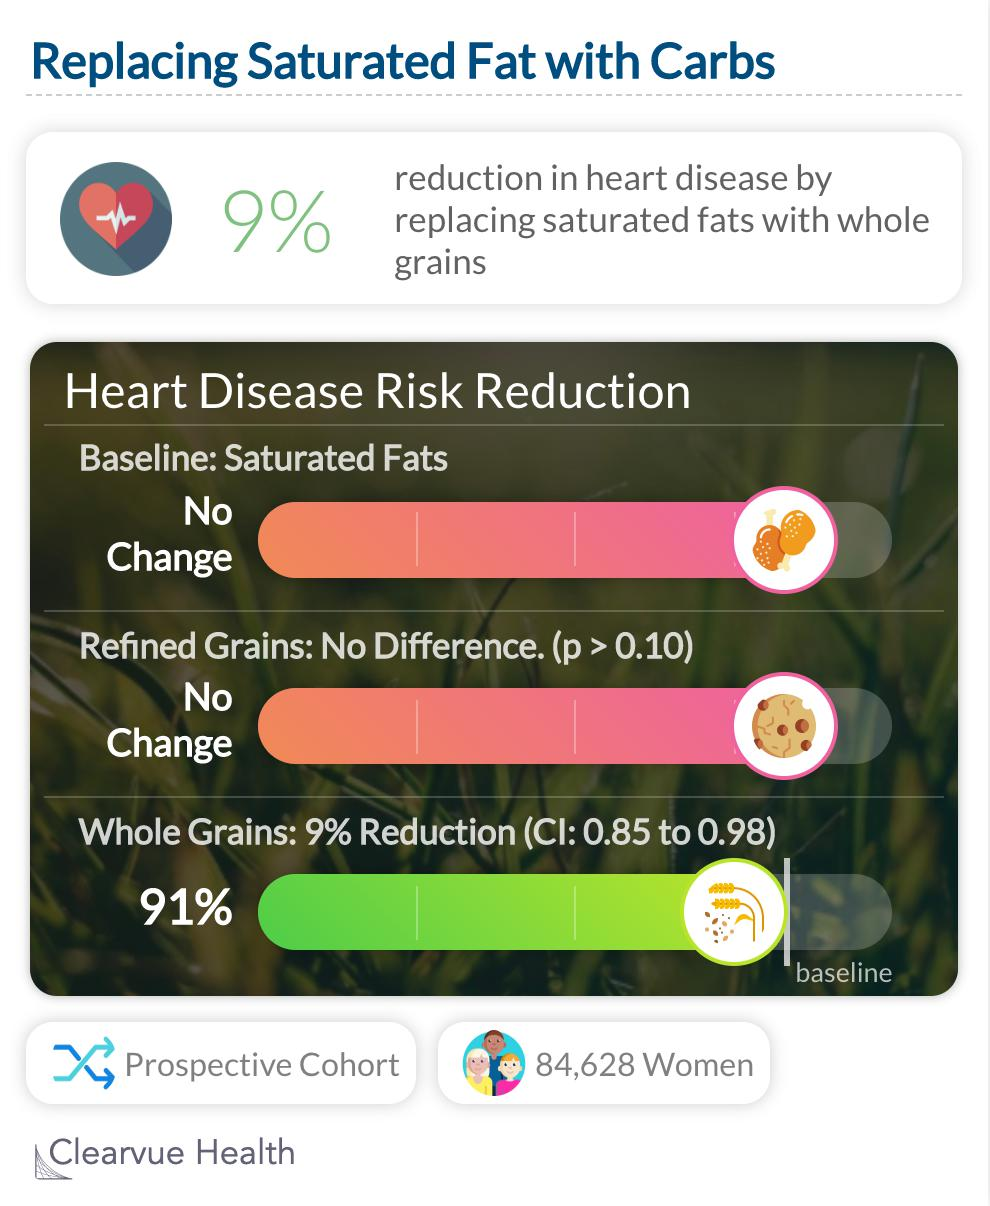 Replacing Saturated Fat with Carbs